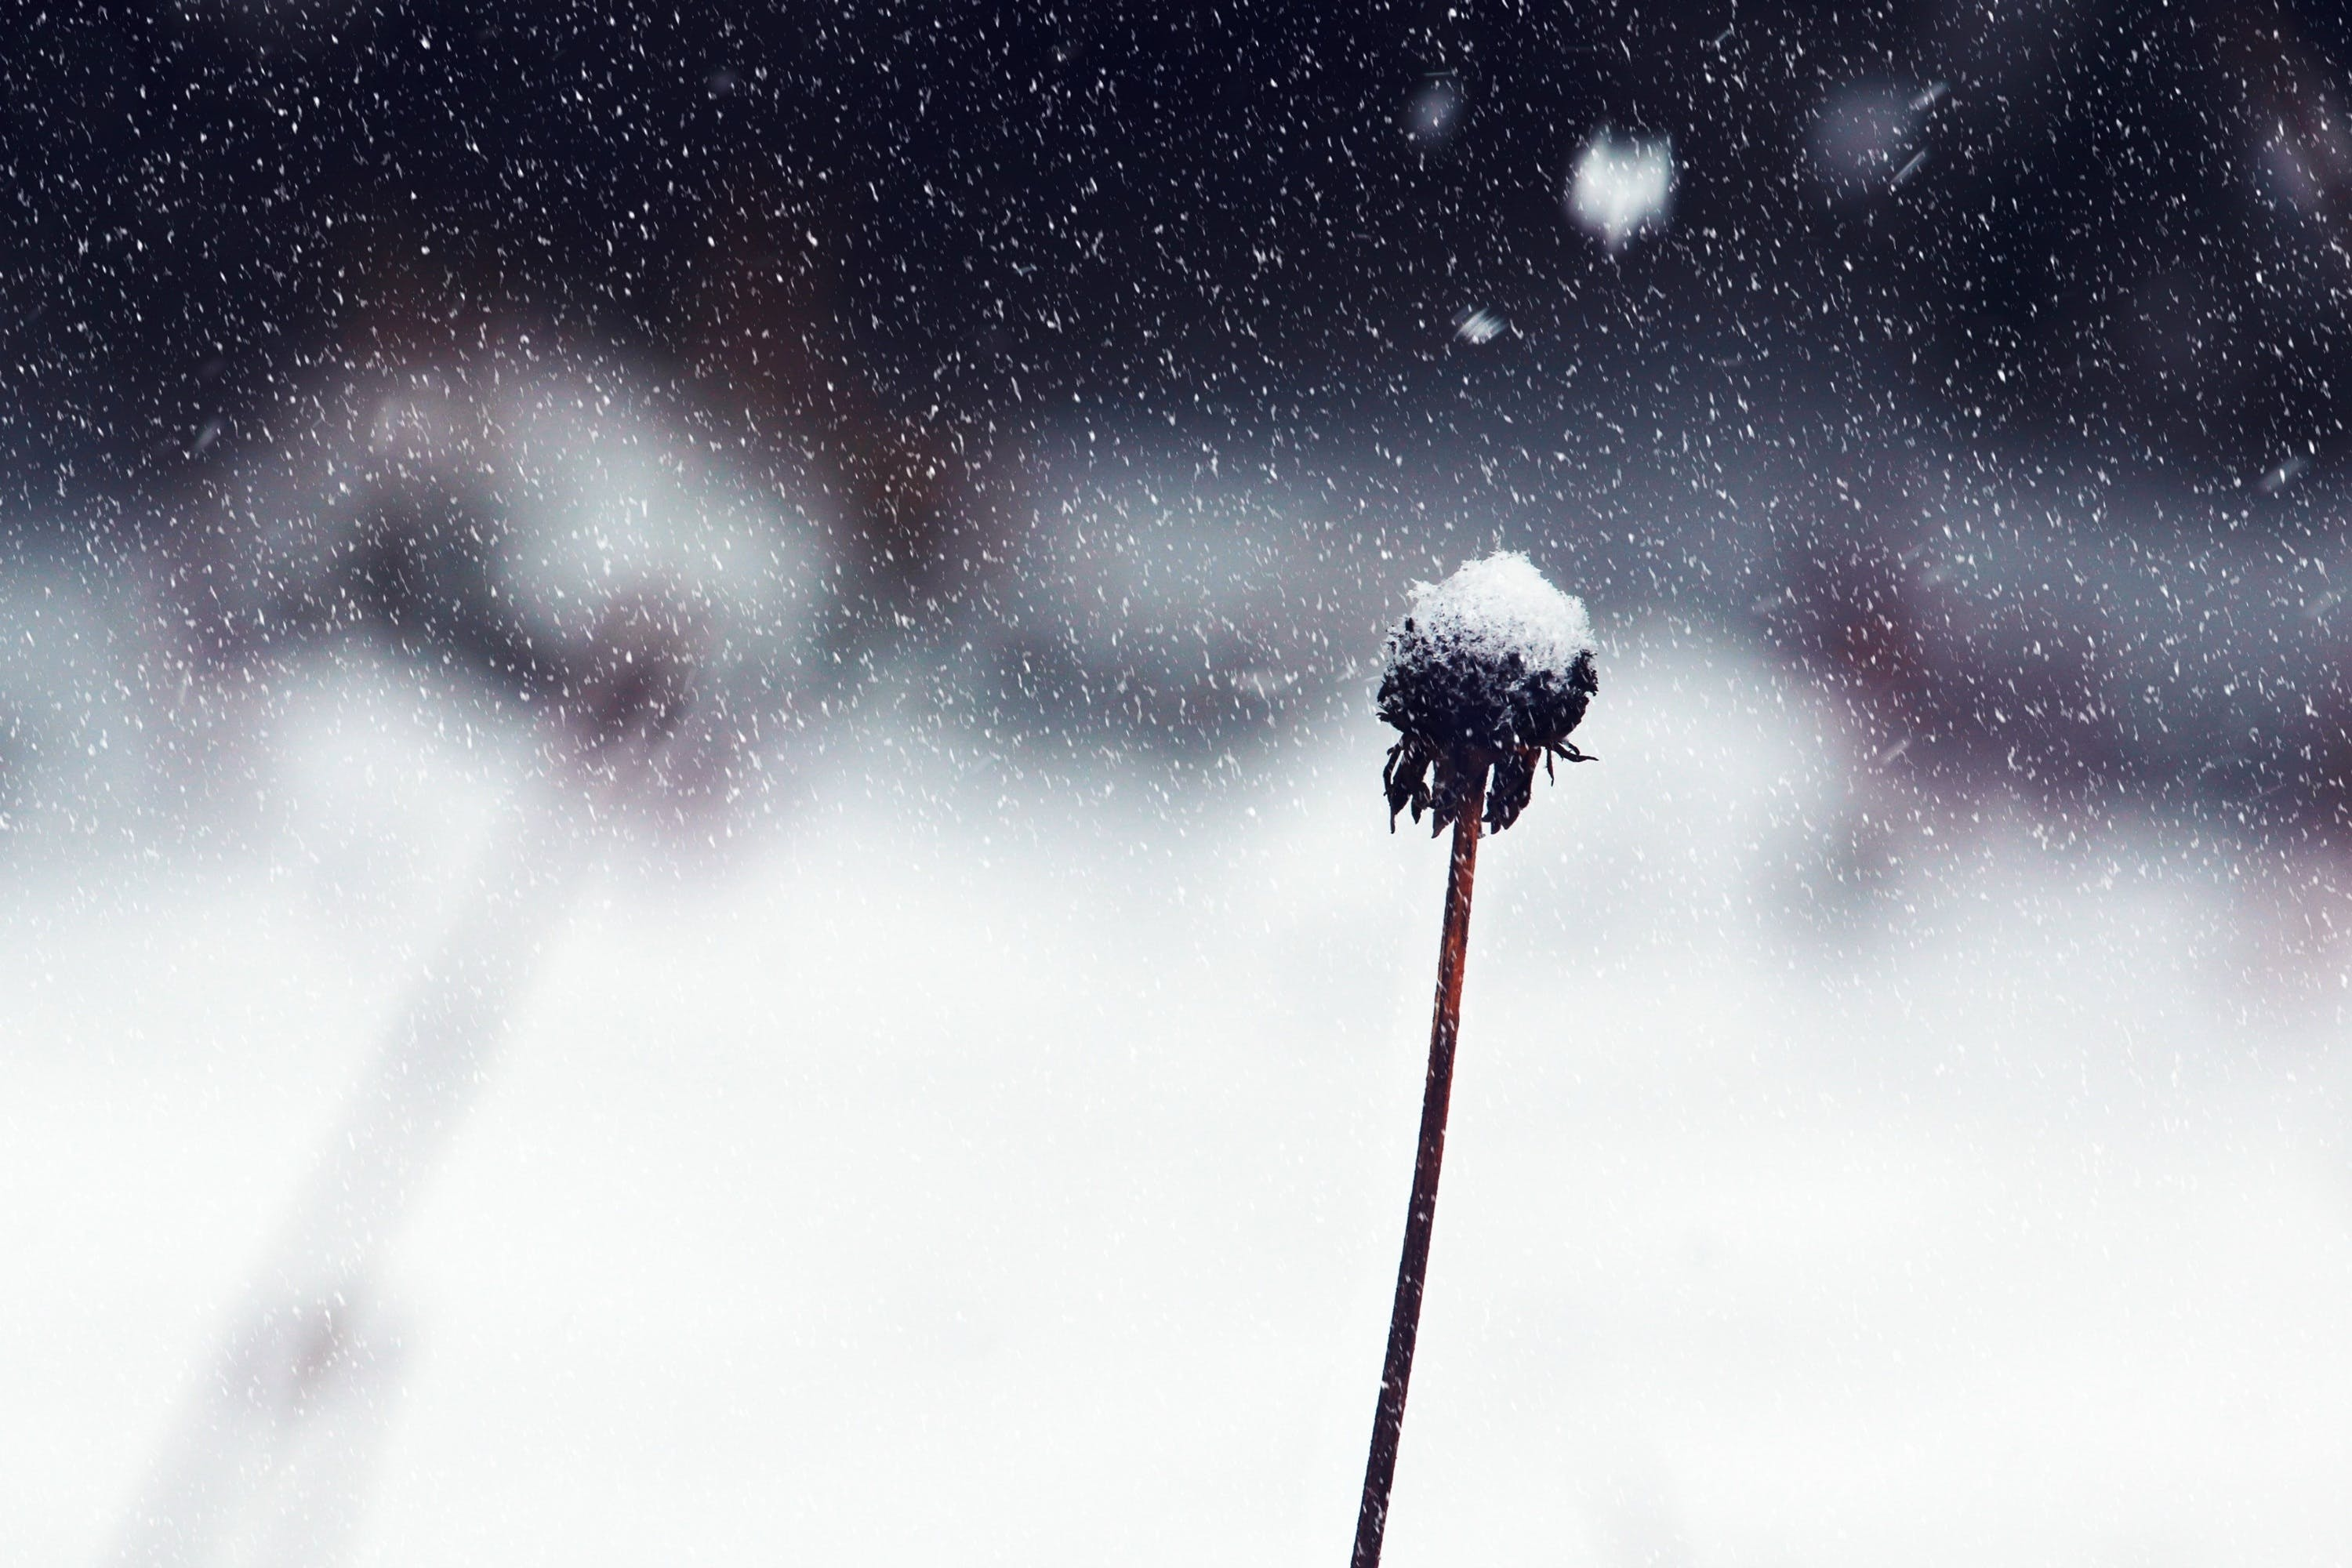 Withered Flower Cover With Snow